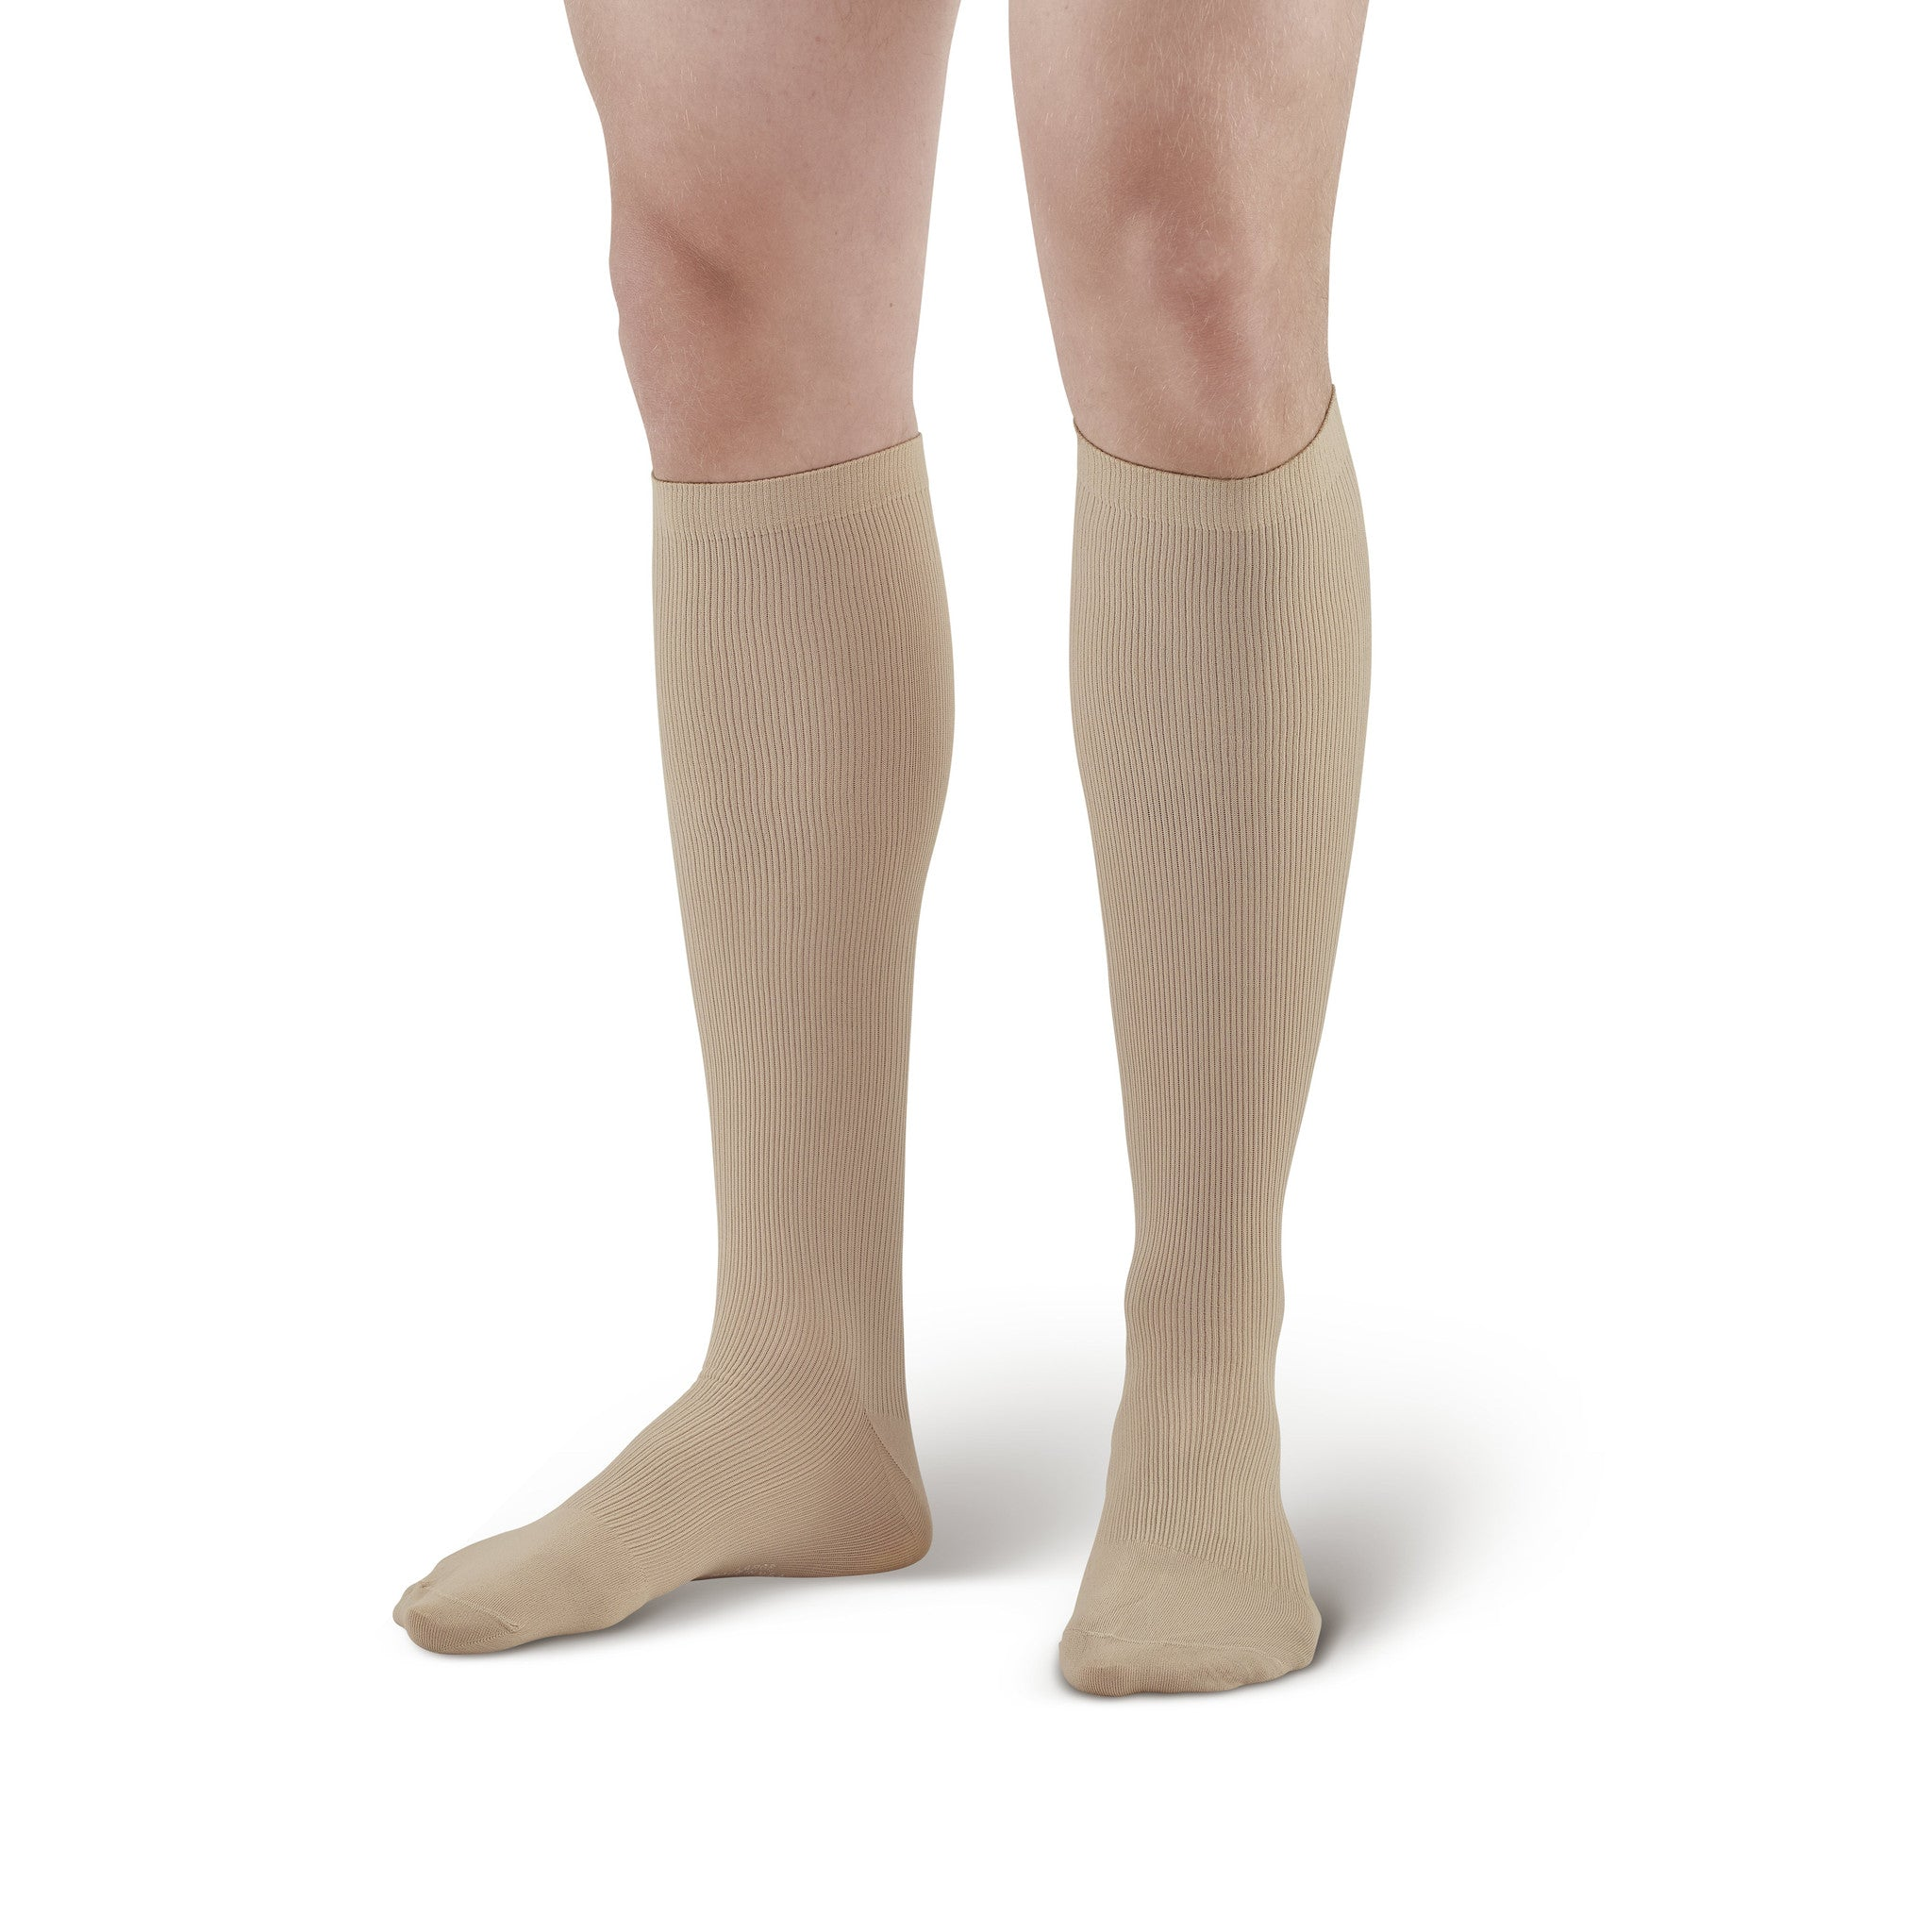 Buy Cheap Jobst For Men Casual 20-30 Tall Knee Compression Socks Factory Direct Selling Price Health & Beauty